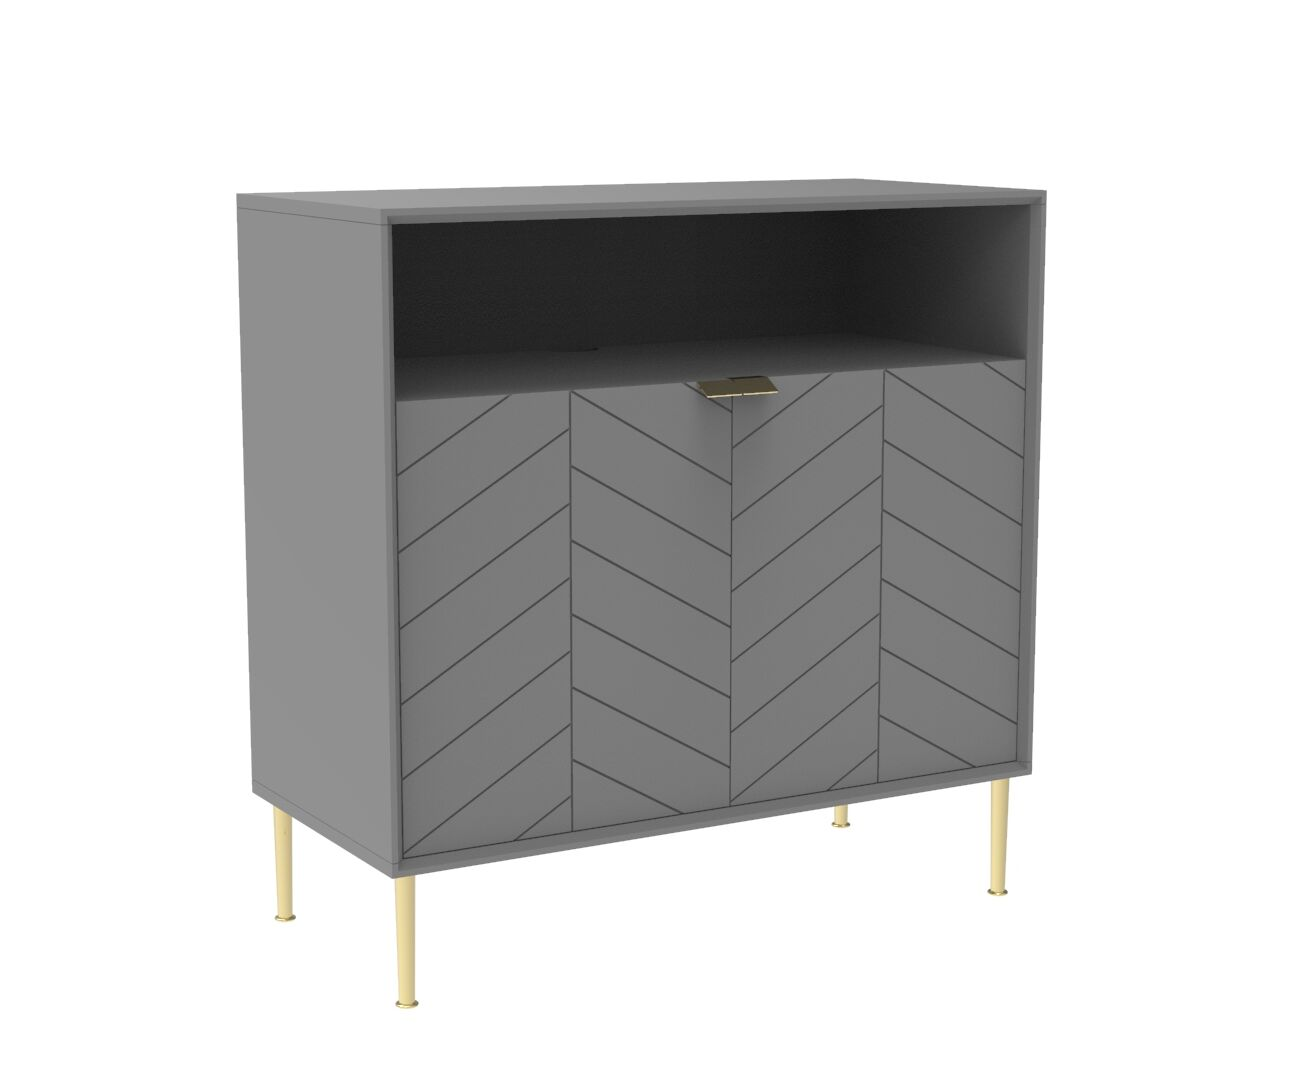 Chevron-patterned Adele Cabinet in Mist Grey and Brass